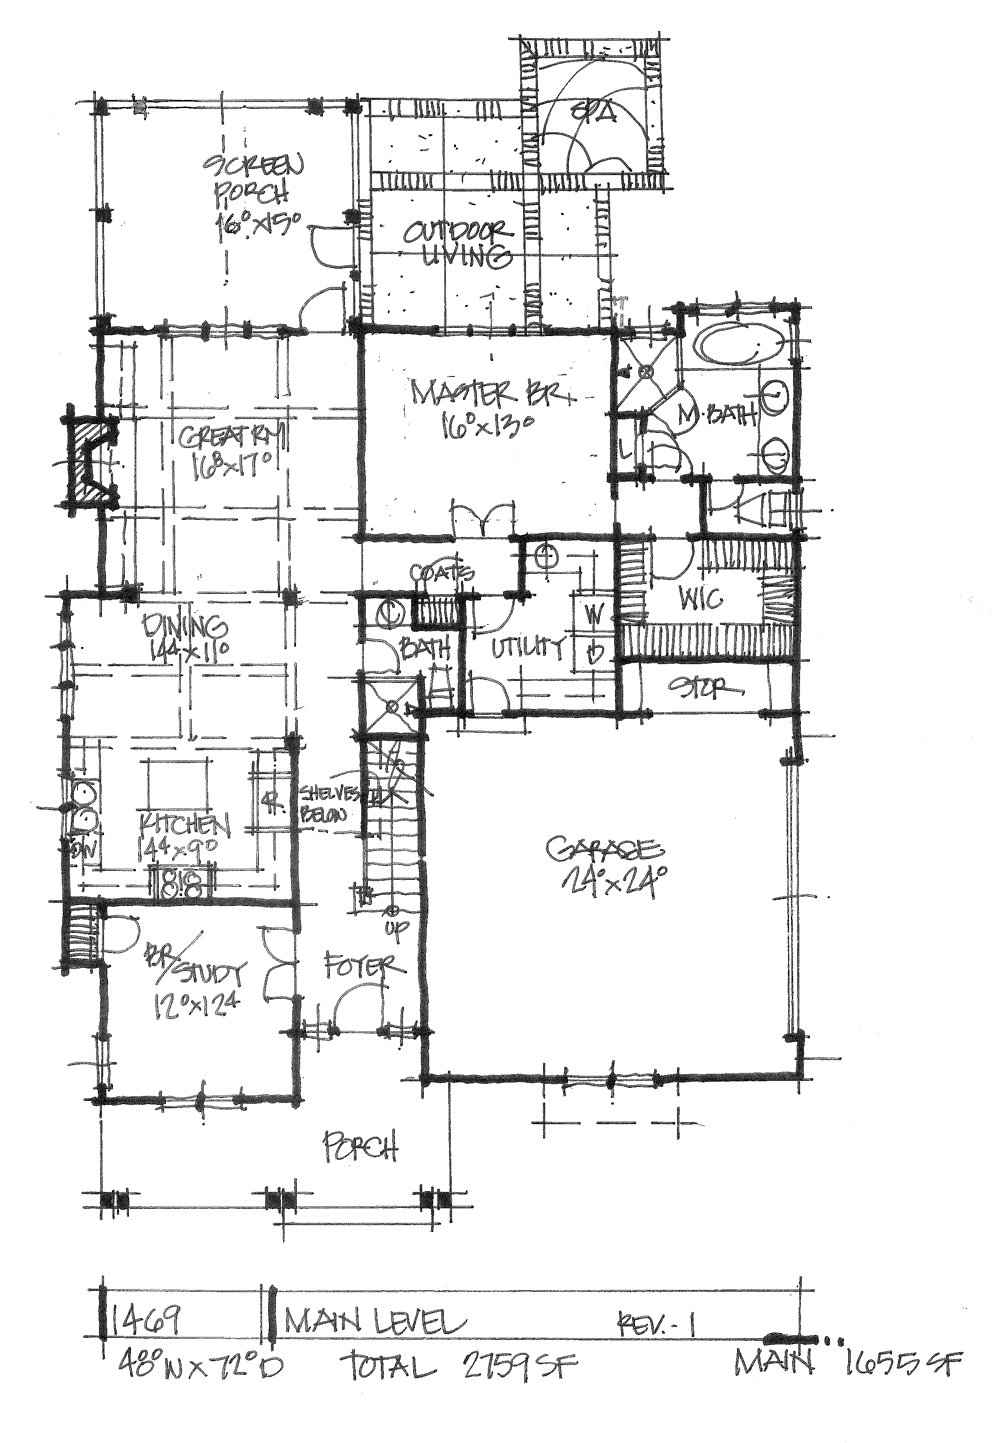 Check out the first floor plan of house plan 1469.